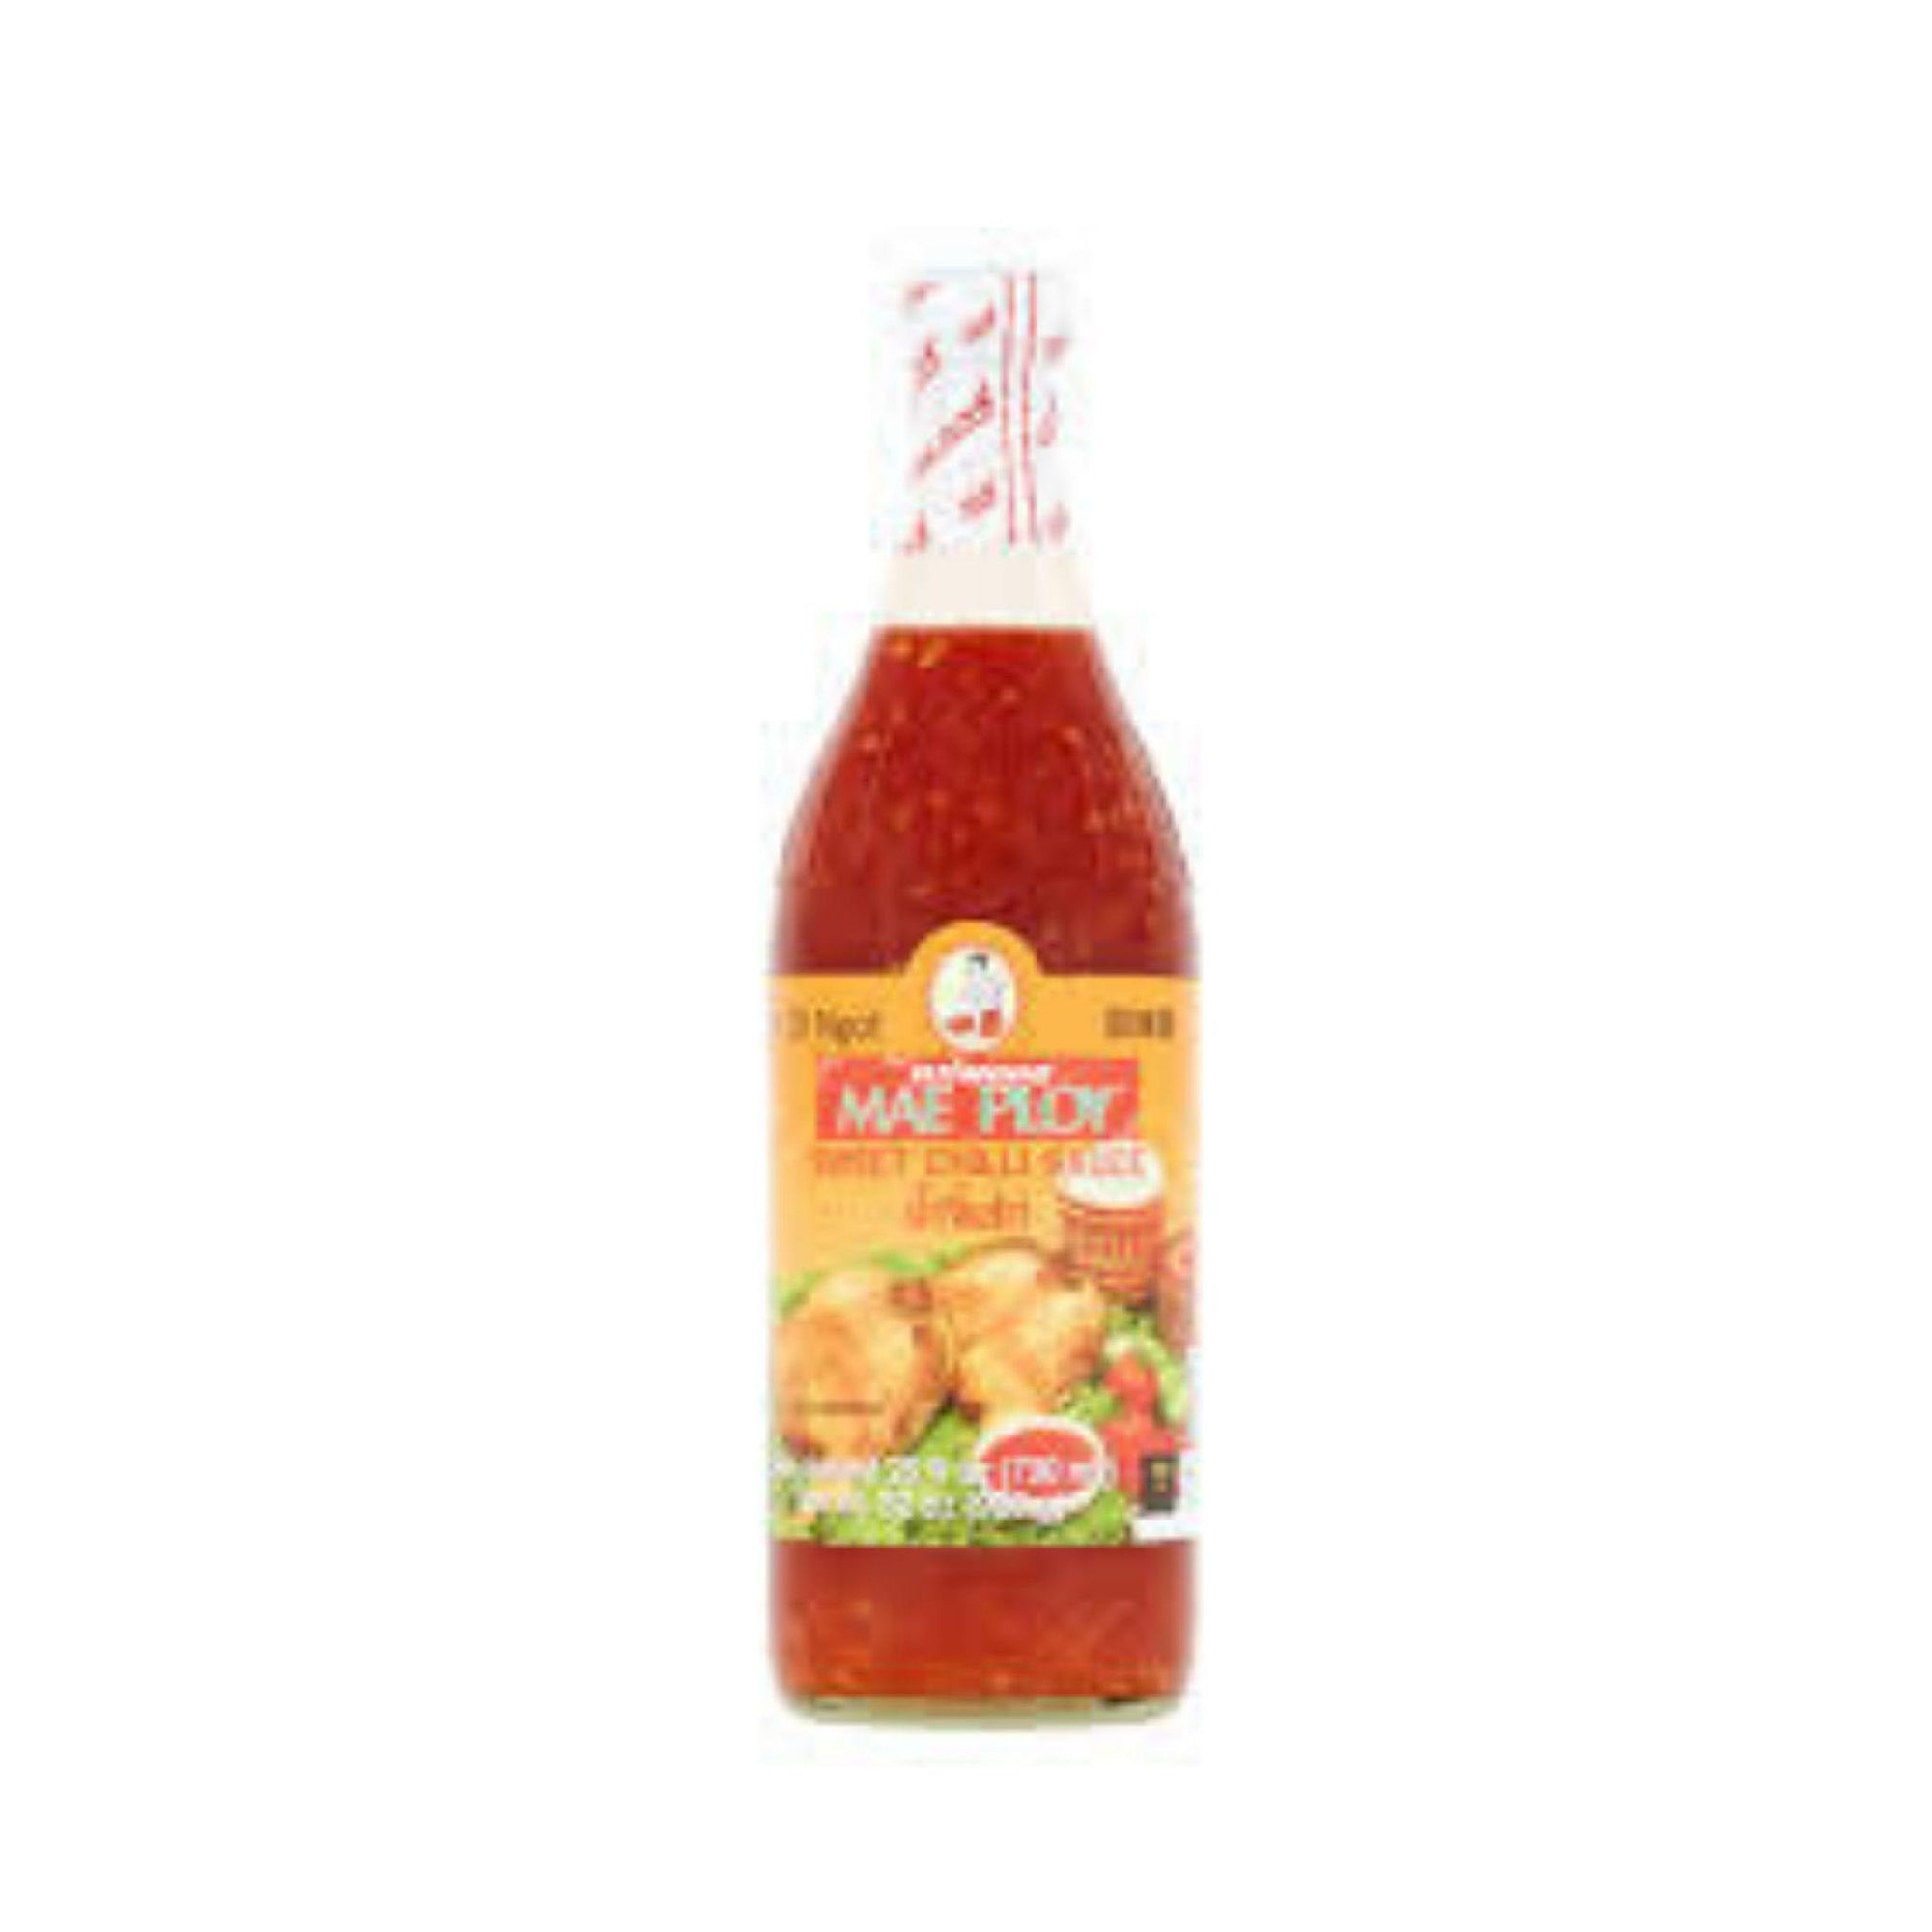 Mae Ploy Sweet Chilli Sauce 730ml - Asian Harvest